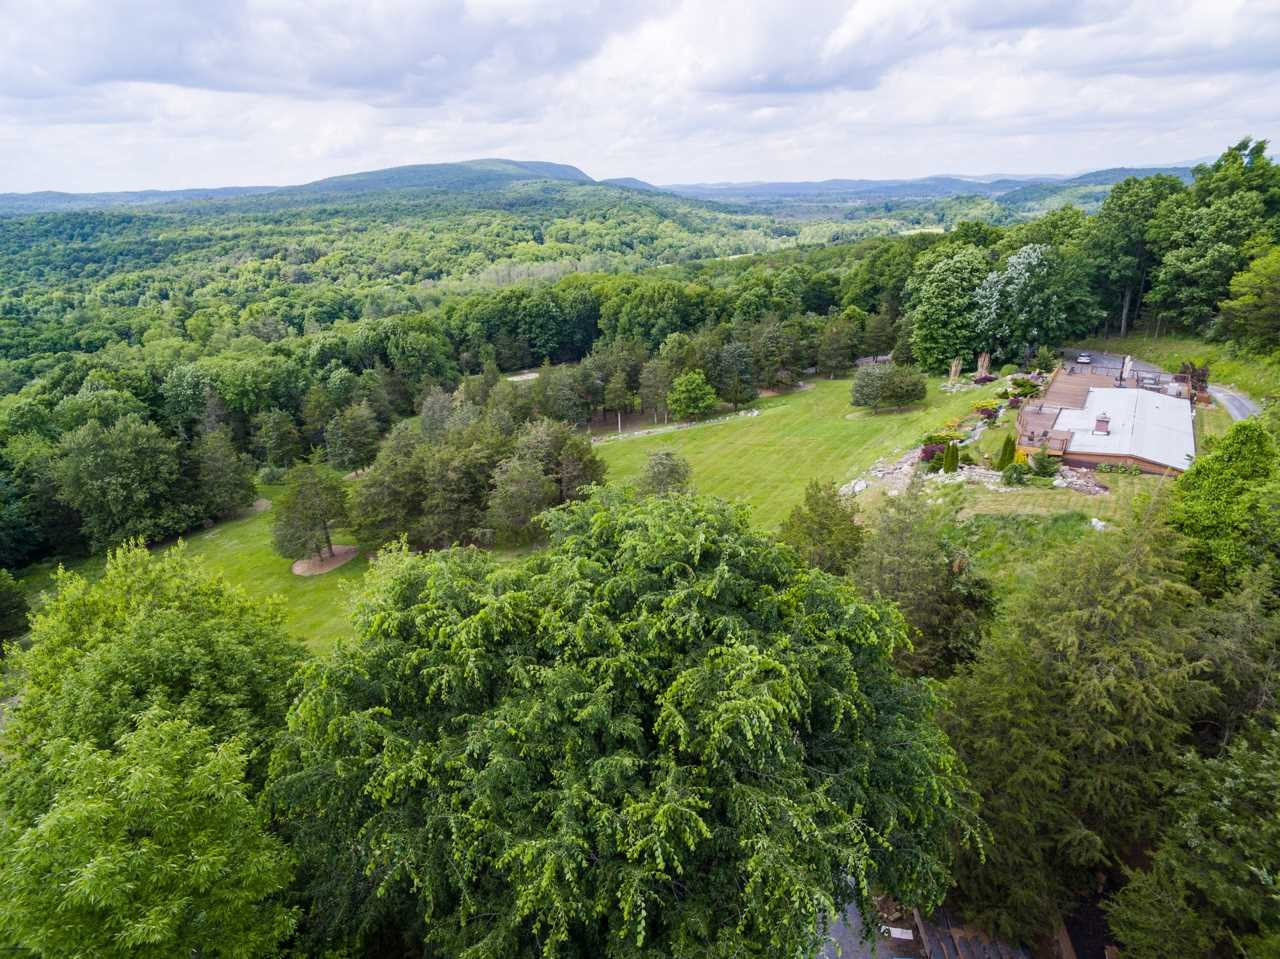 Single Family Home for Sale at 45 QUARTERHORSE WAY 45 QUARTERHORSE WAY Stanfordville, New York 12581 United States